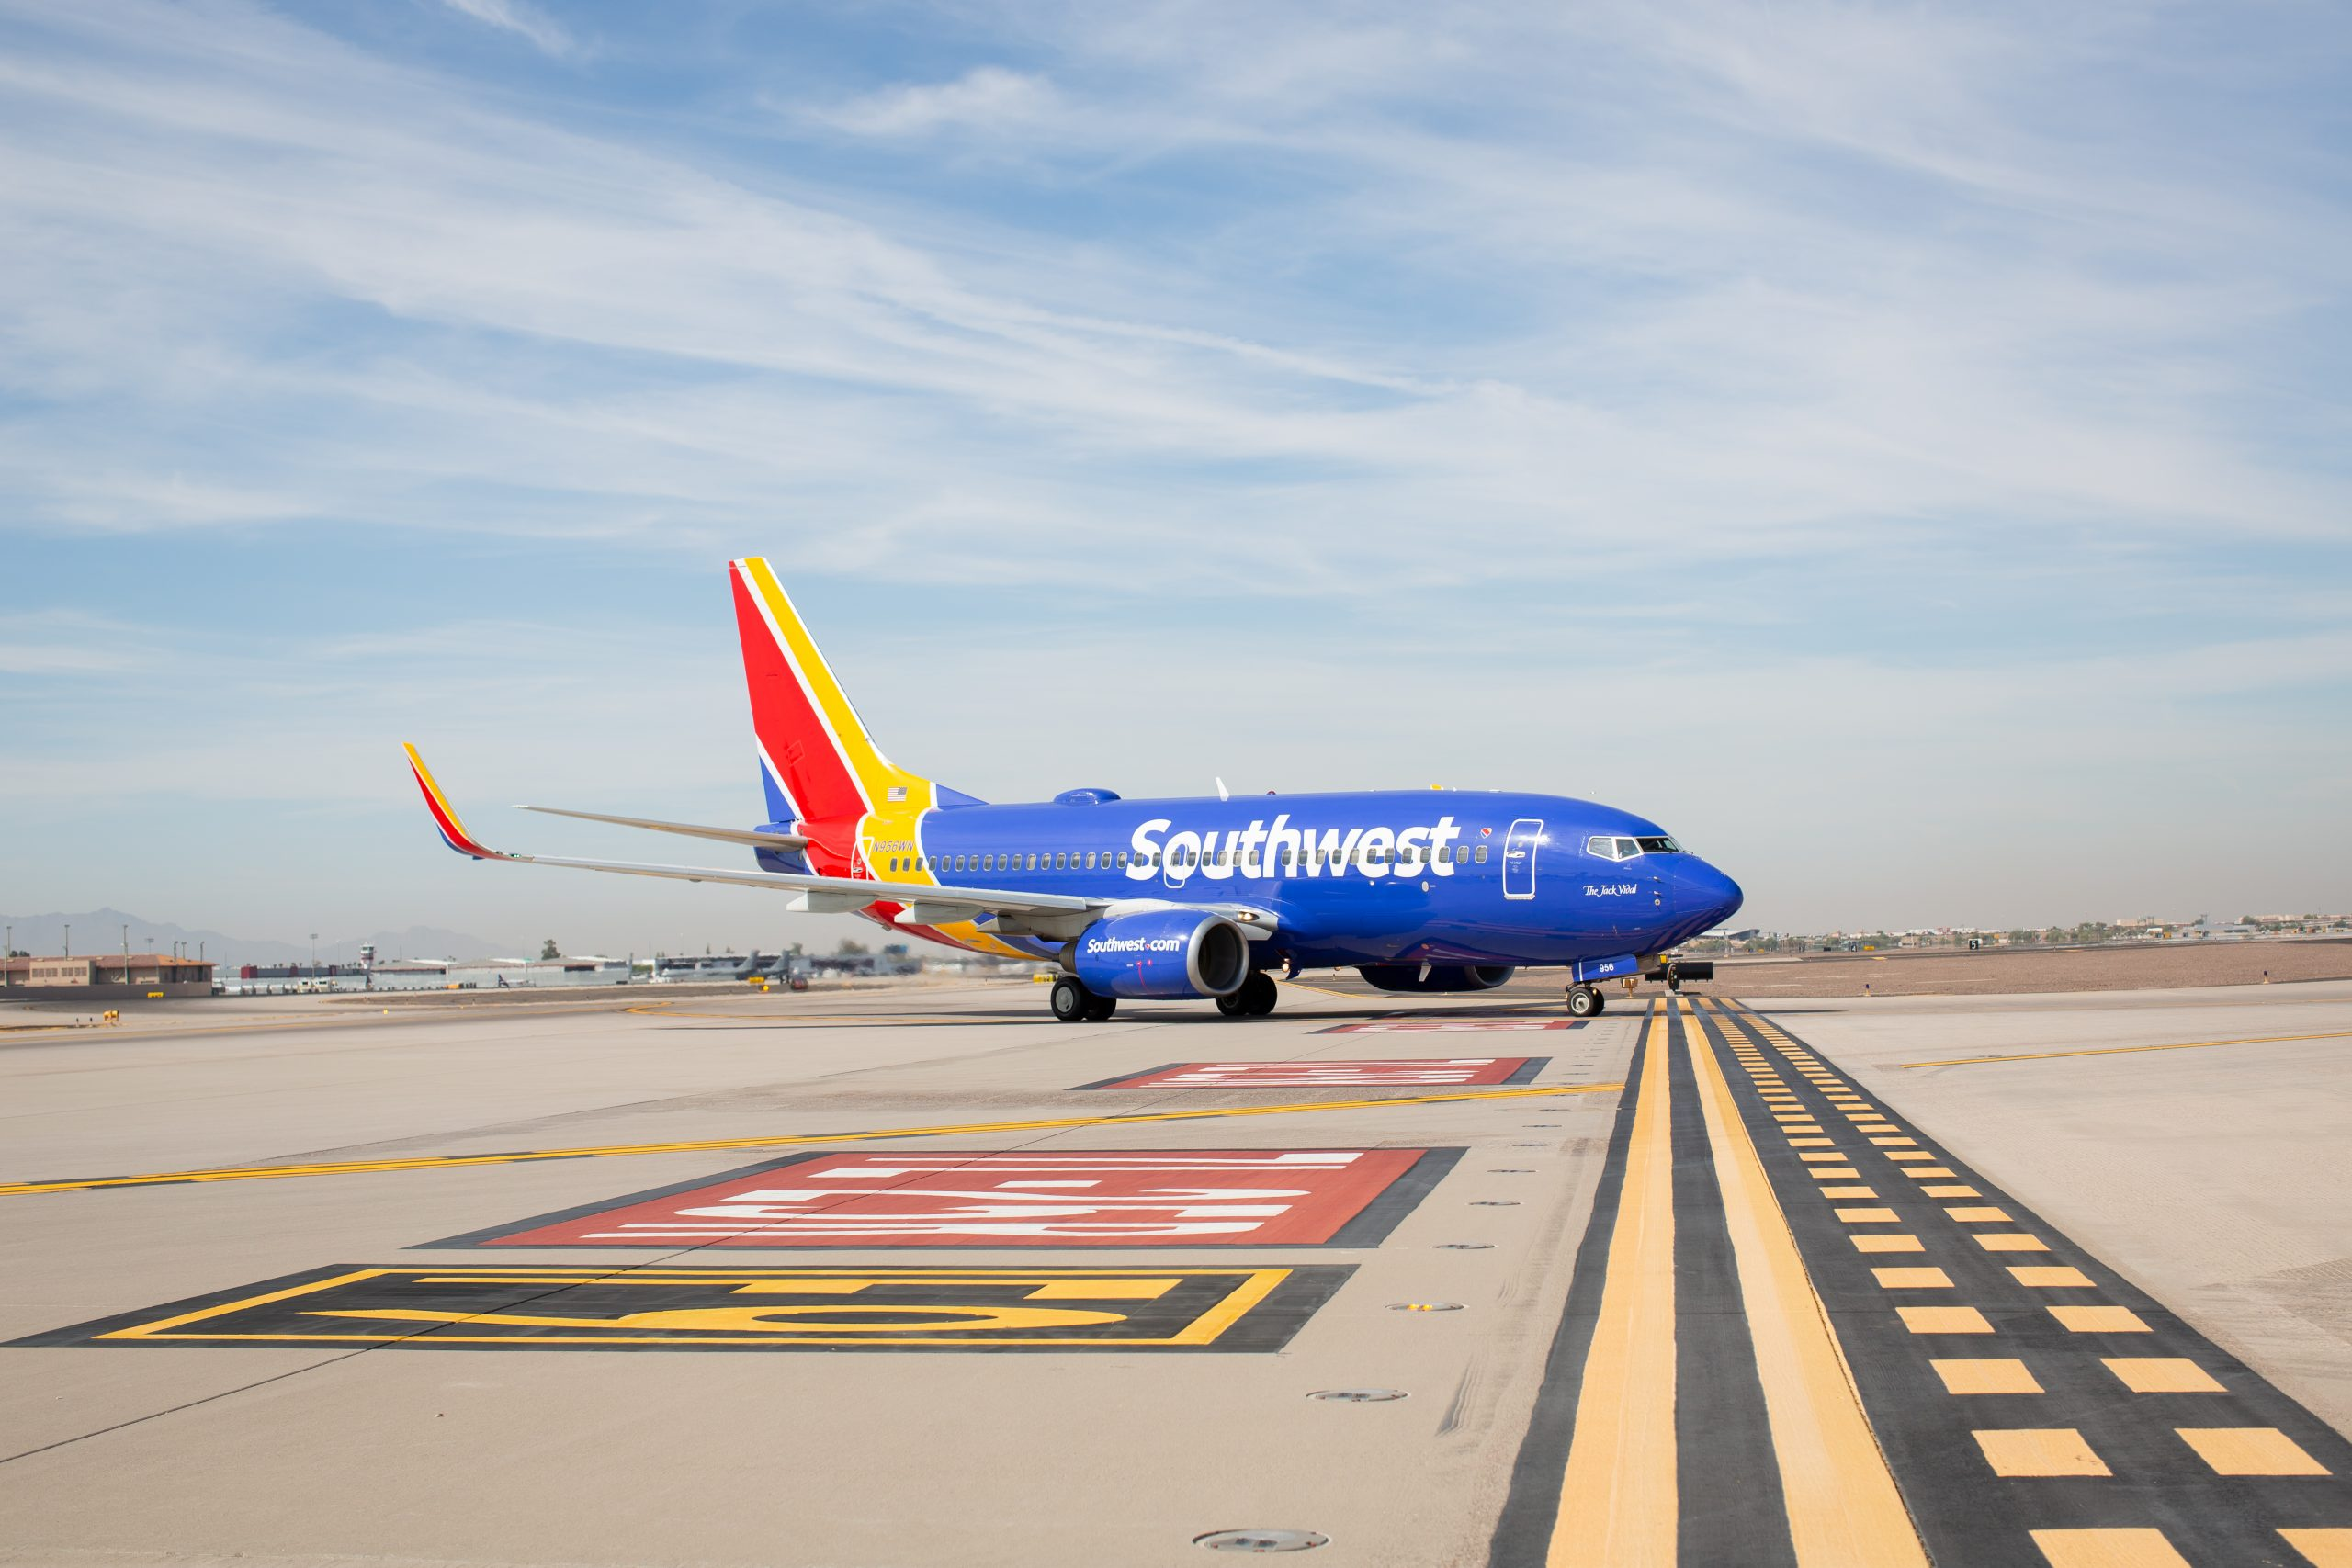 Southwest Airlines Apologizes as it Cancels or Delays at Least 34% of Flight Schedule On Saturday